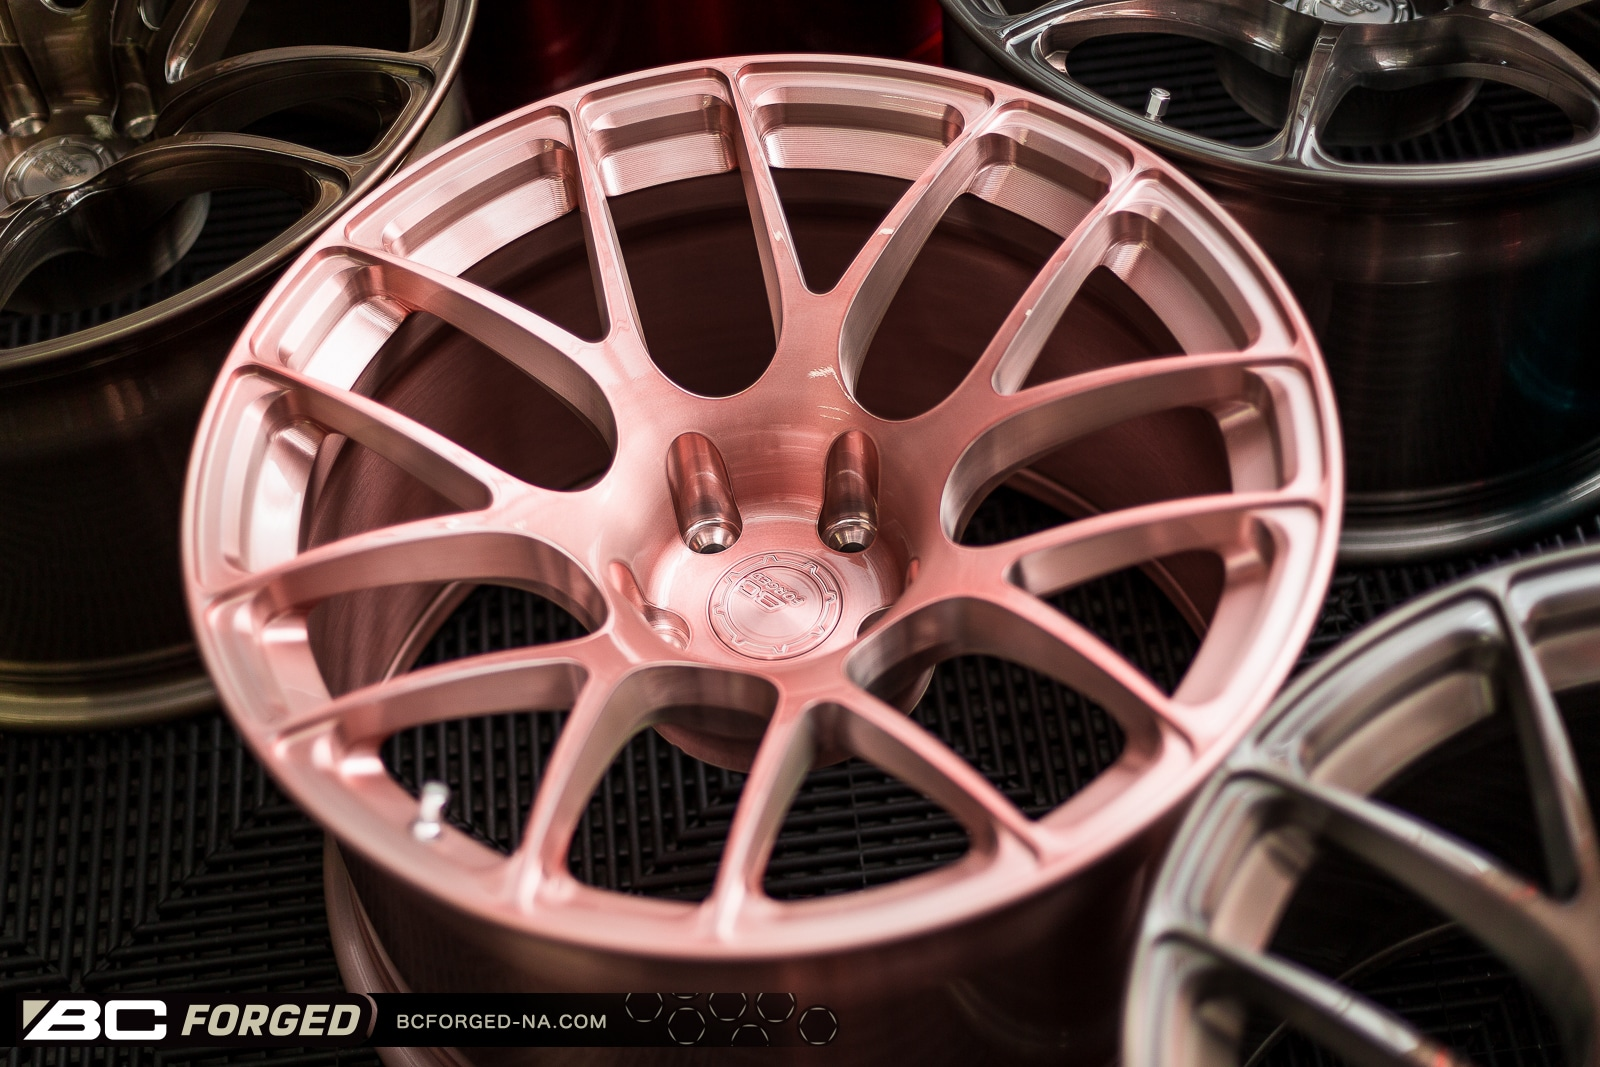 bc-forged-rs40-monoblock-mesh-concave-wheels-in-rose-gold-finish.jpg